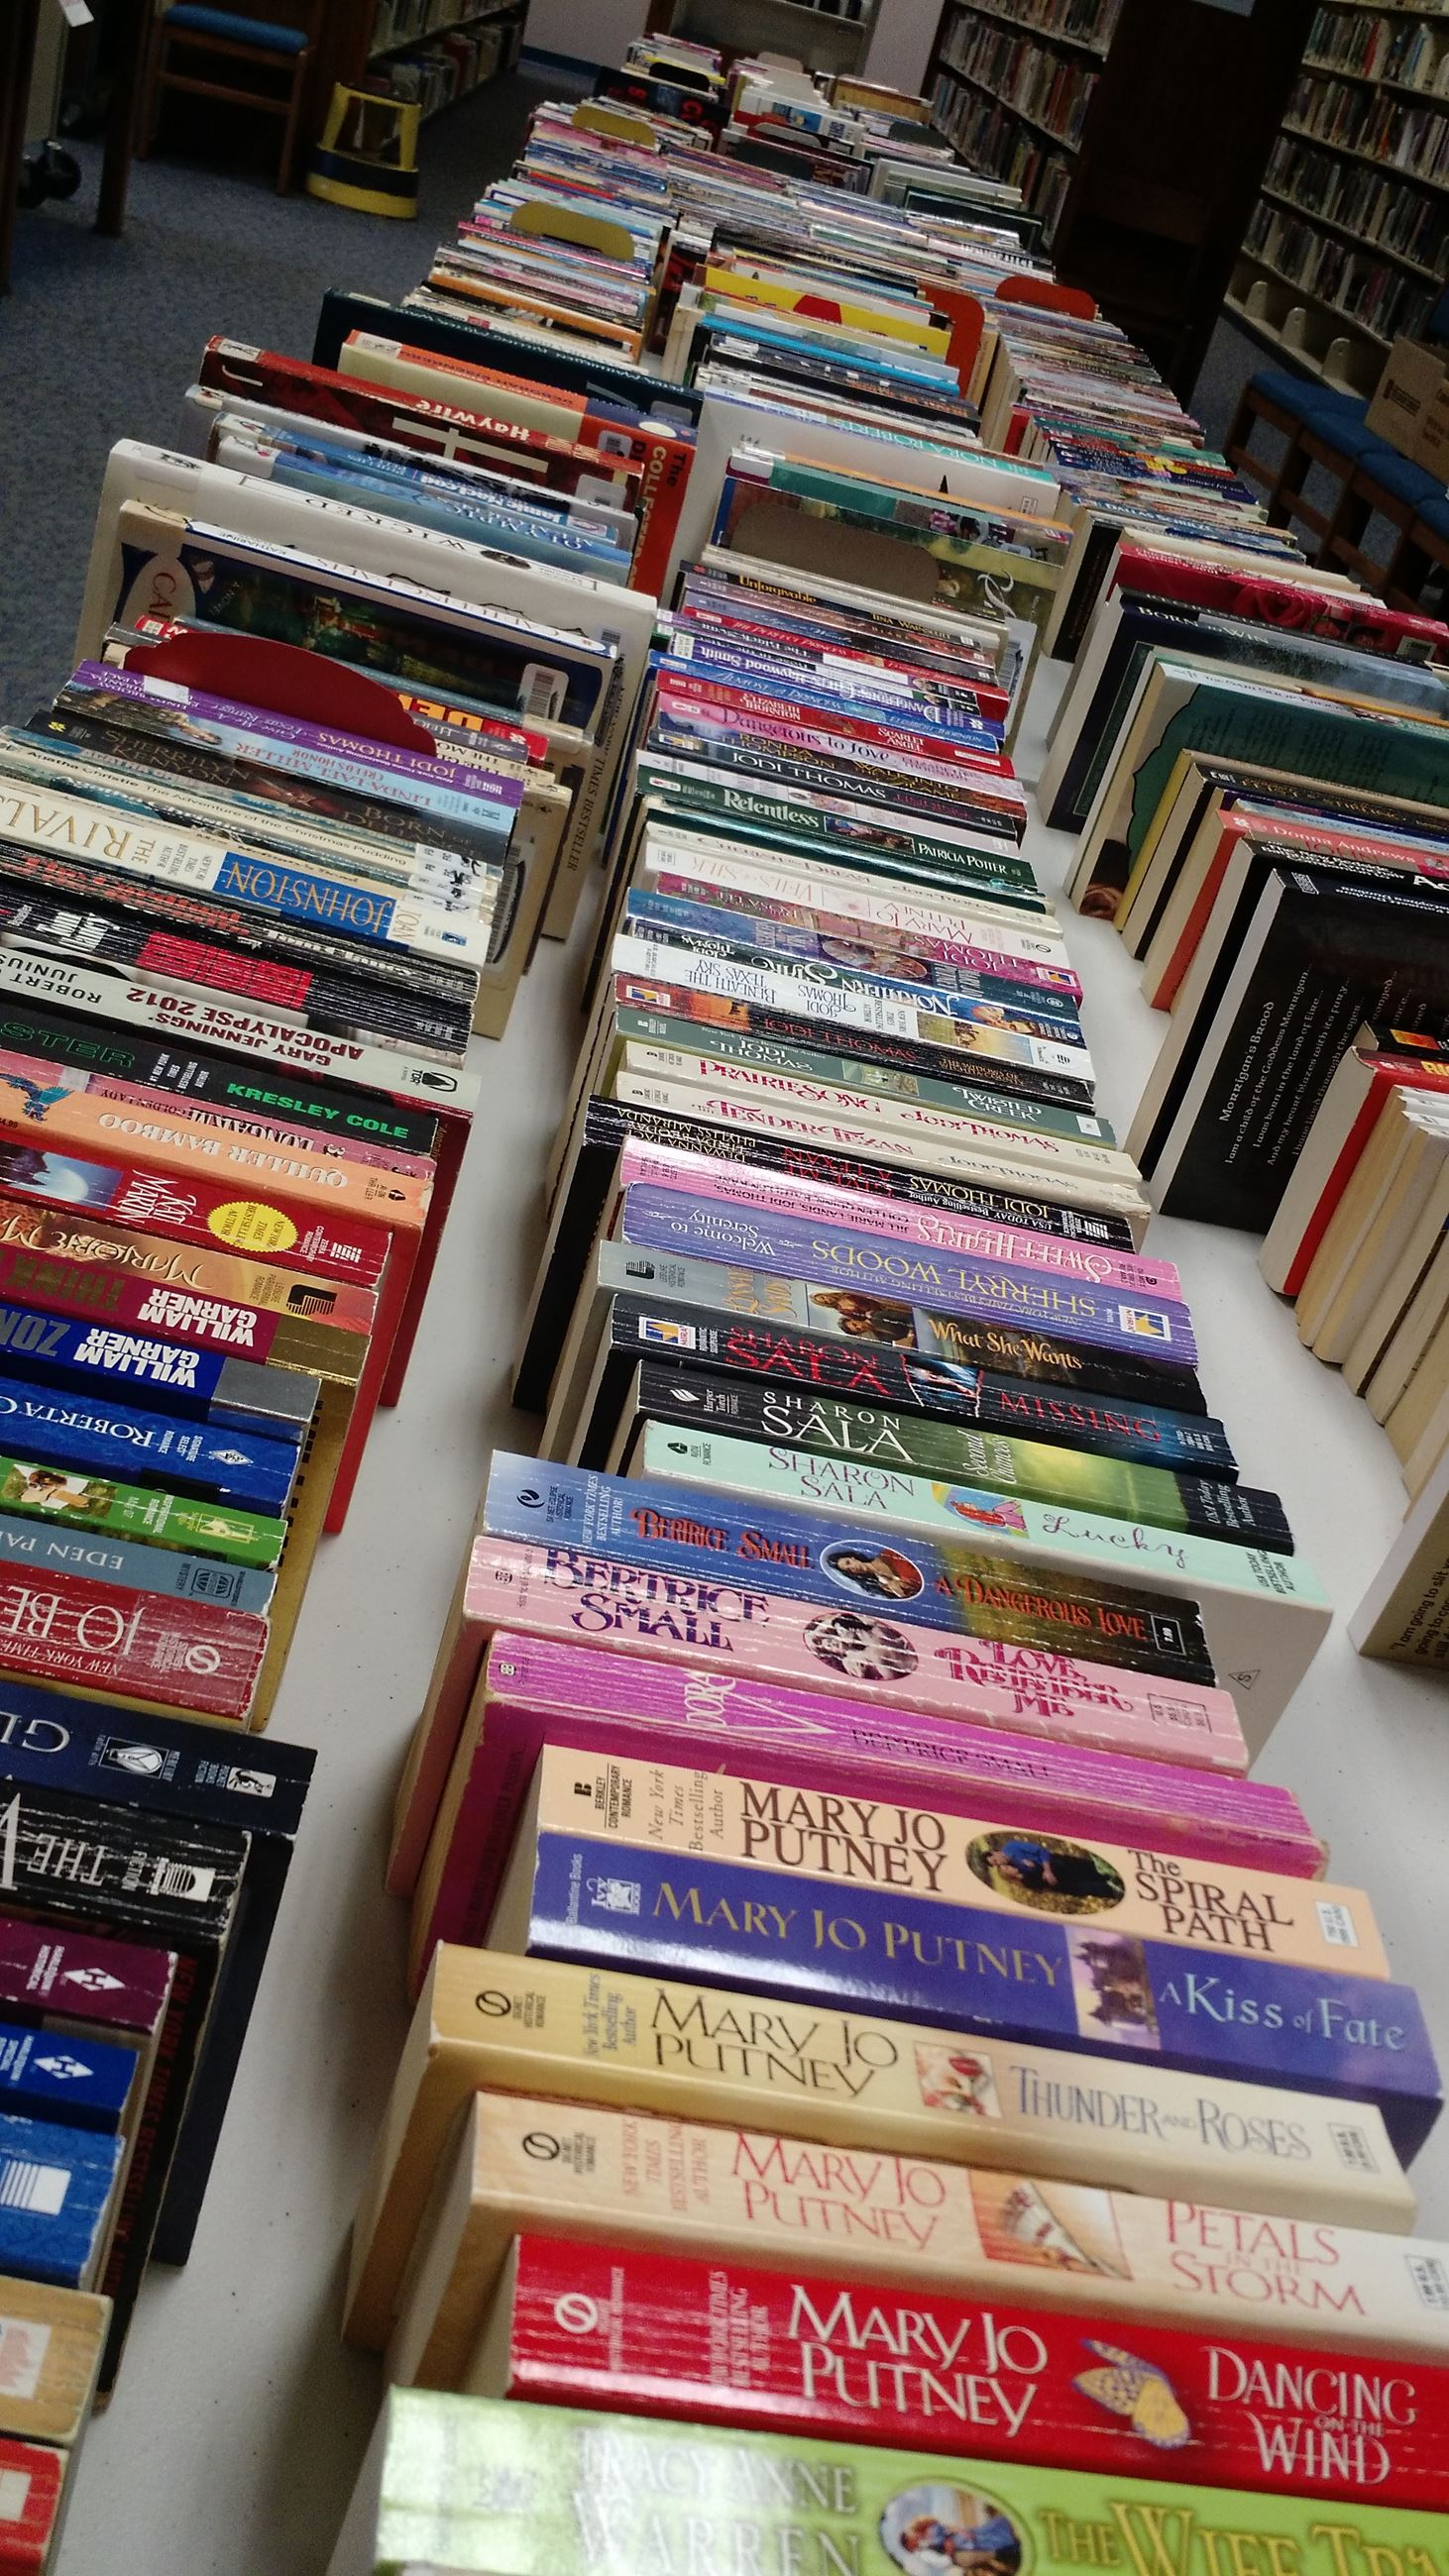 Row of books on a table